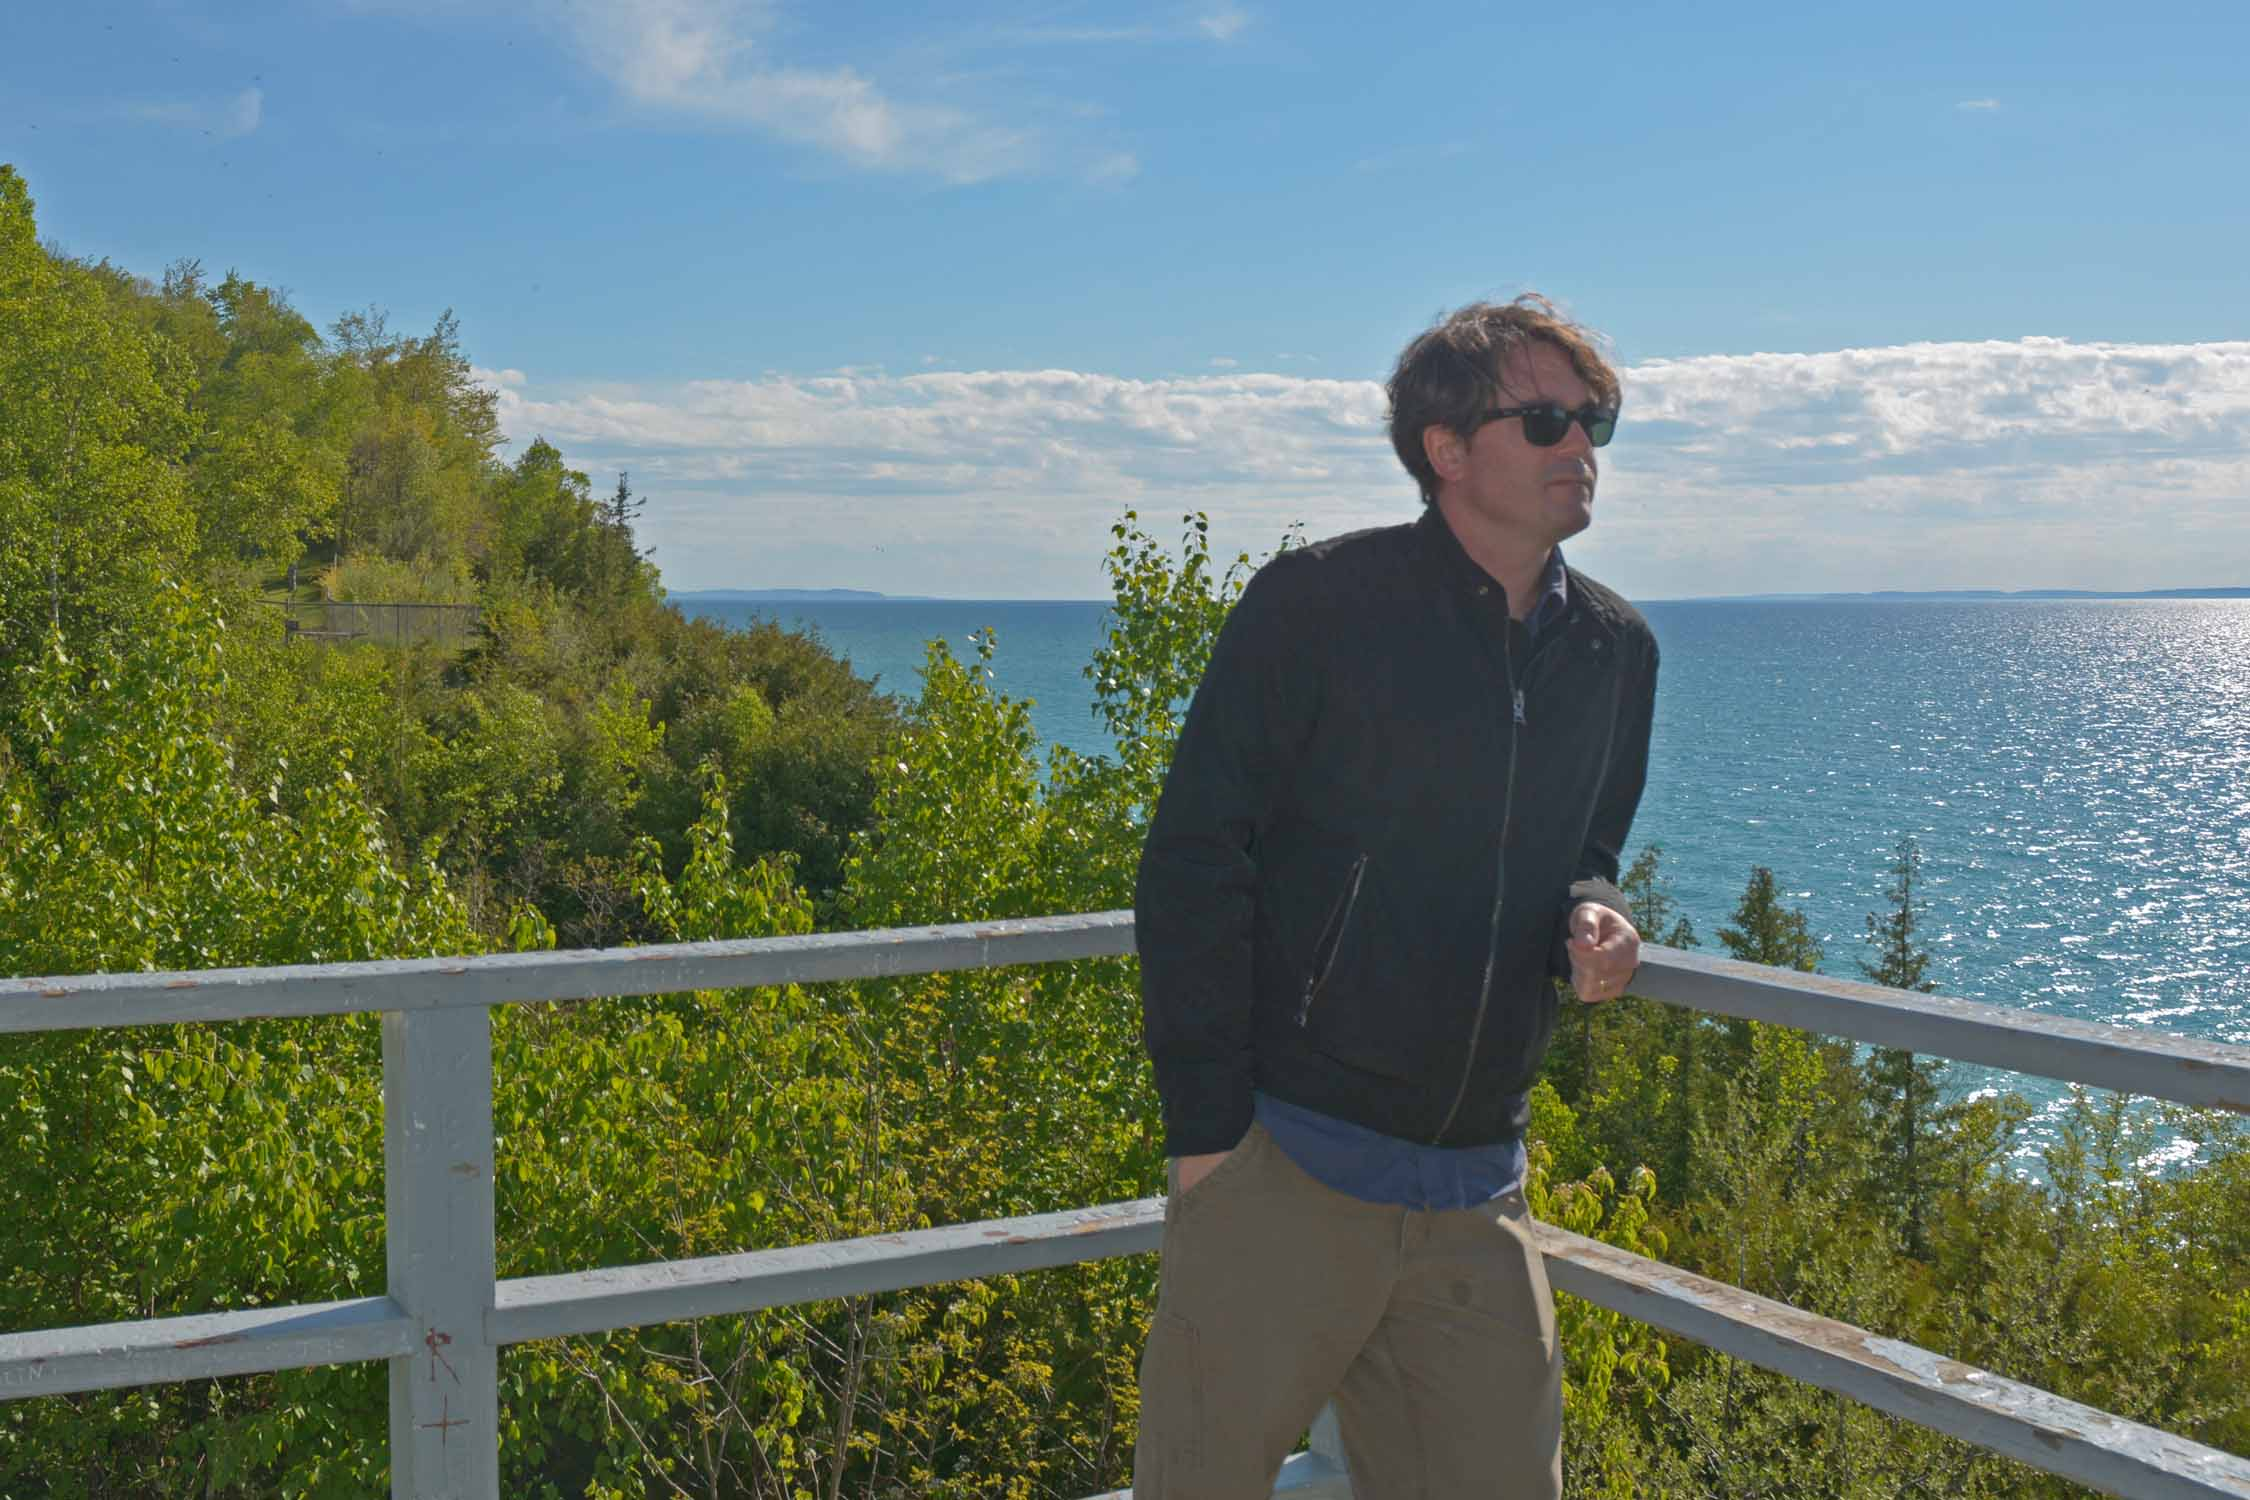 John taking in the view of Lake Michigan at the Peterson Park overlook.